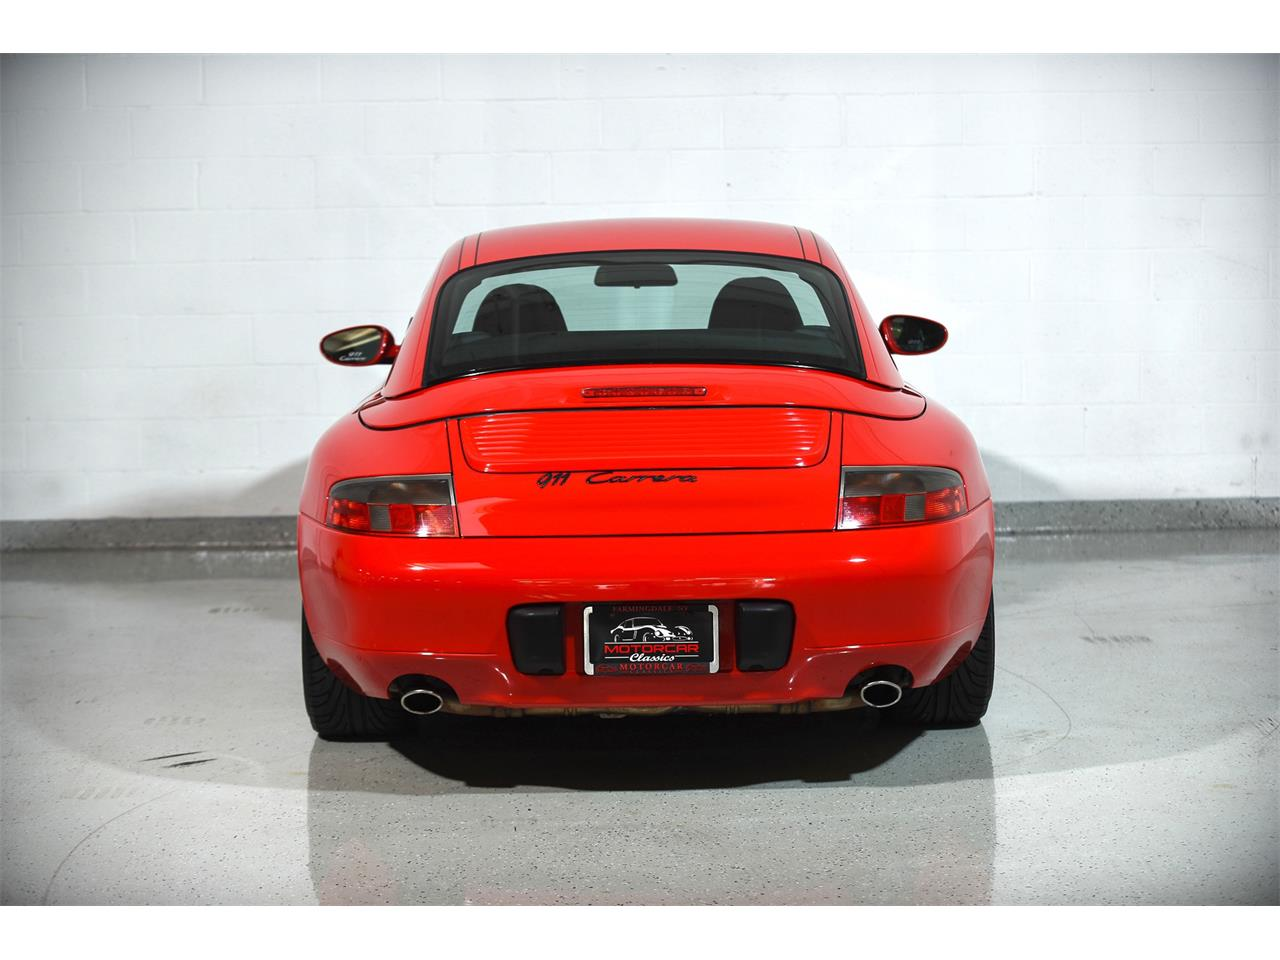 Large Picture of '99 Porsche 911 located in Farmingdale New York - $24,500.00 - MBOH